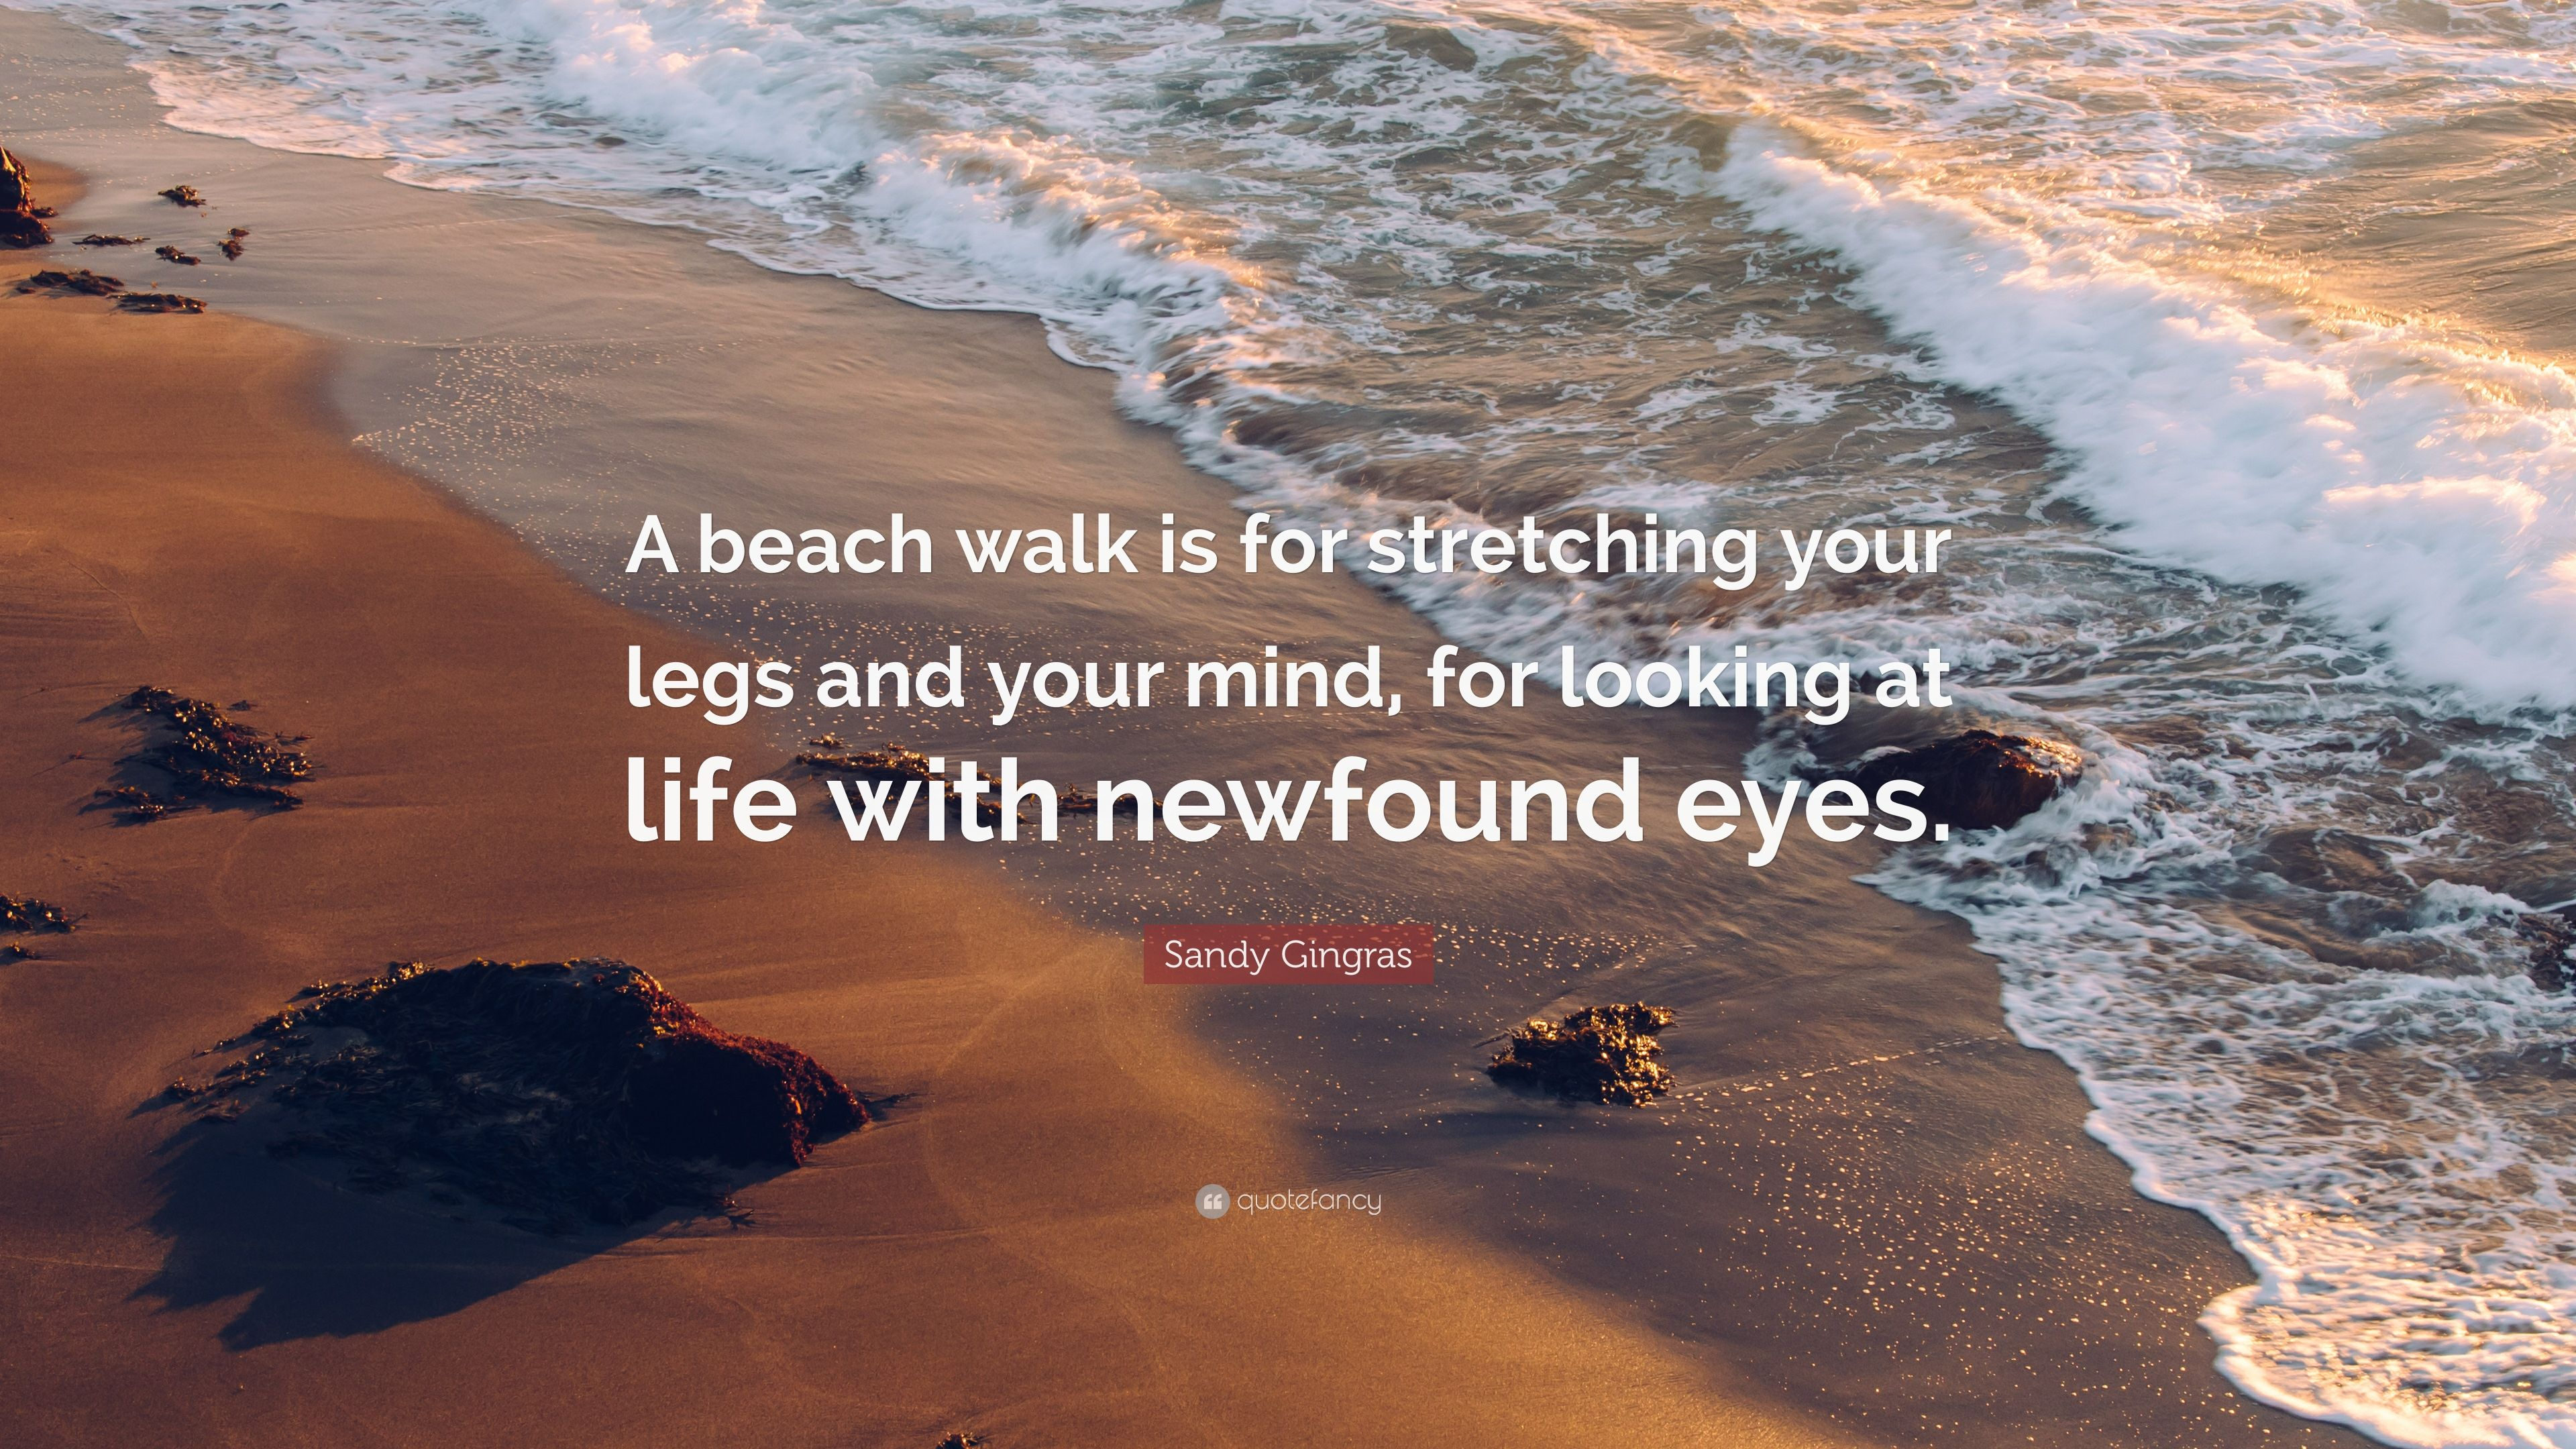 Sandy Gingras Quote: U201cA Beach Walk Is For Stretching Your Legs And Your Mind